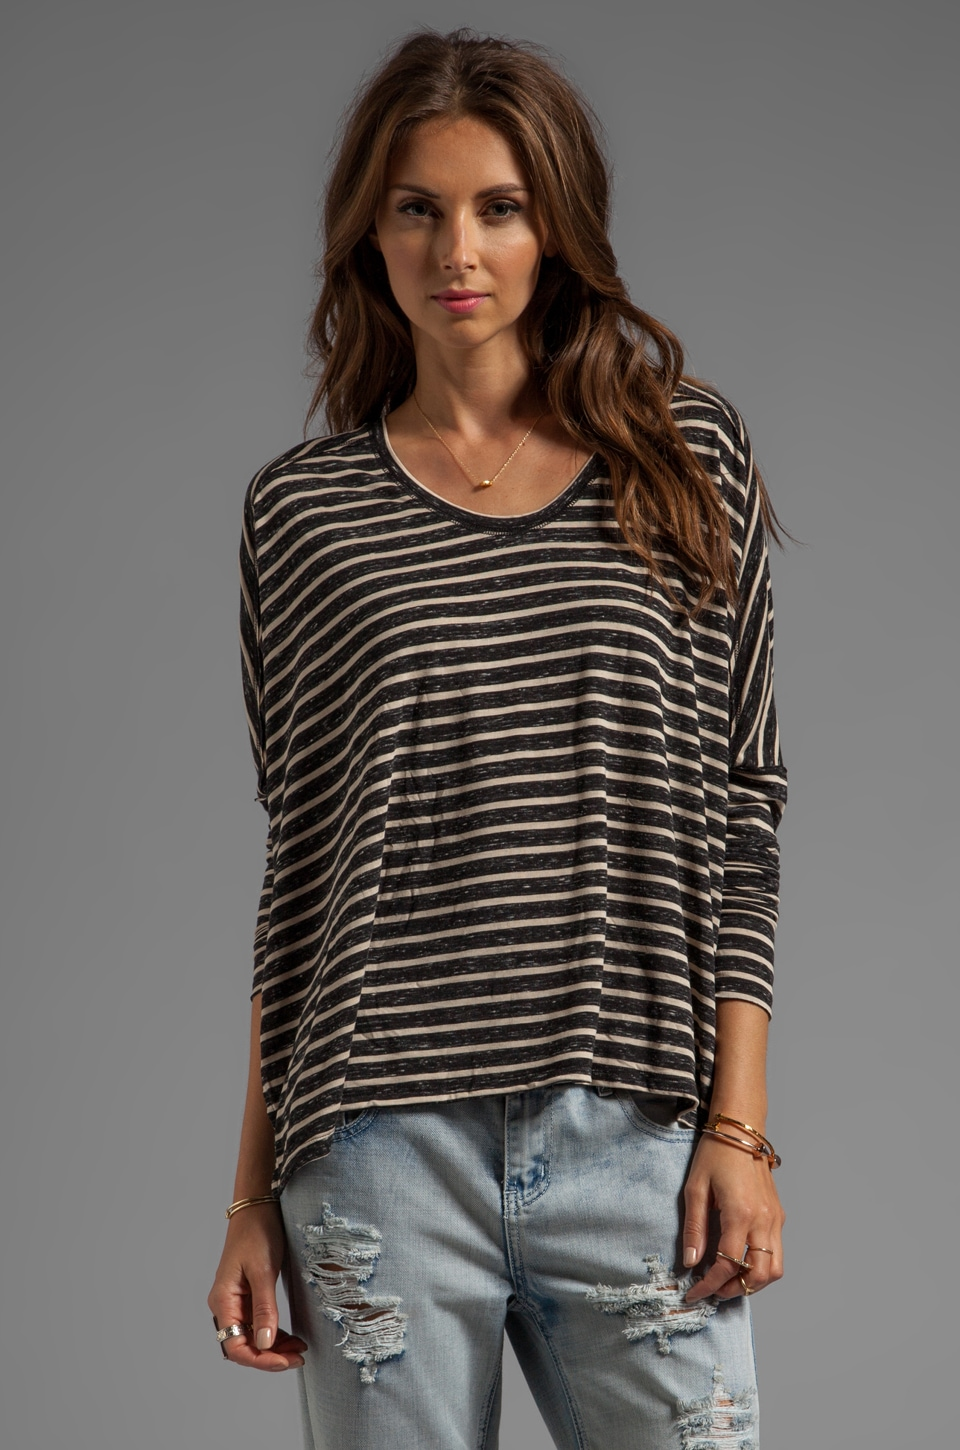 Free People Pandora's Striped Boxy Tee in Black